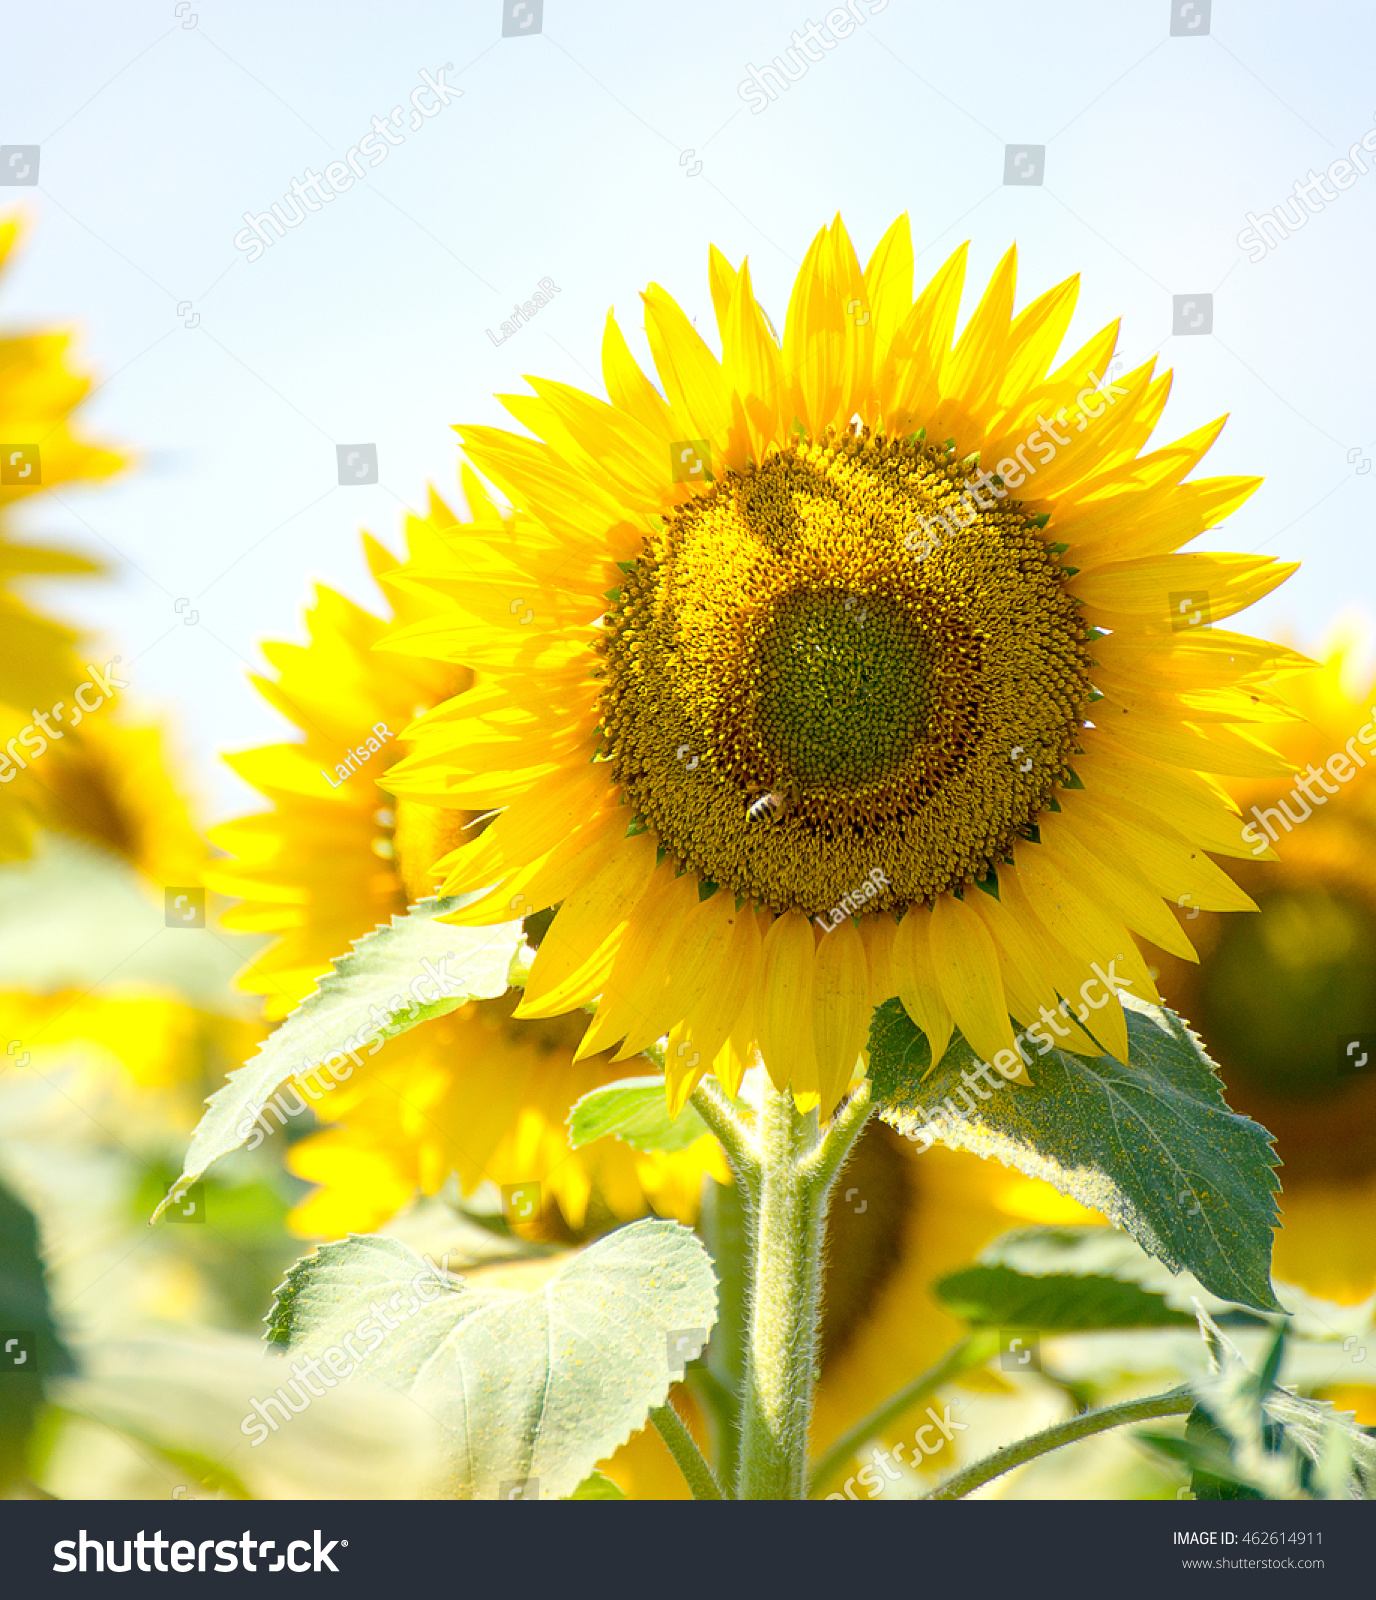 sunflowers flowers green background nature yellow summer wallpaper